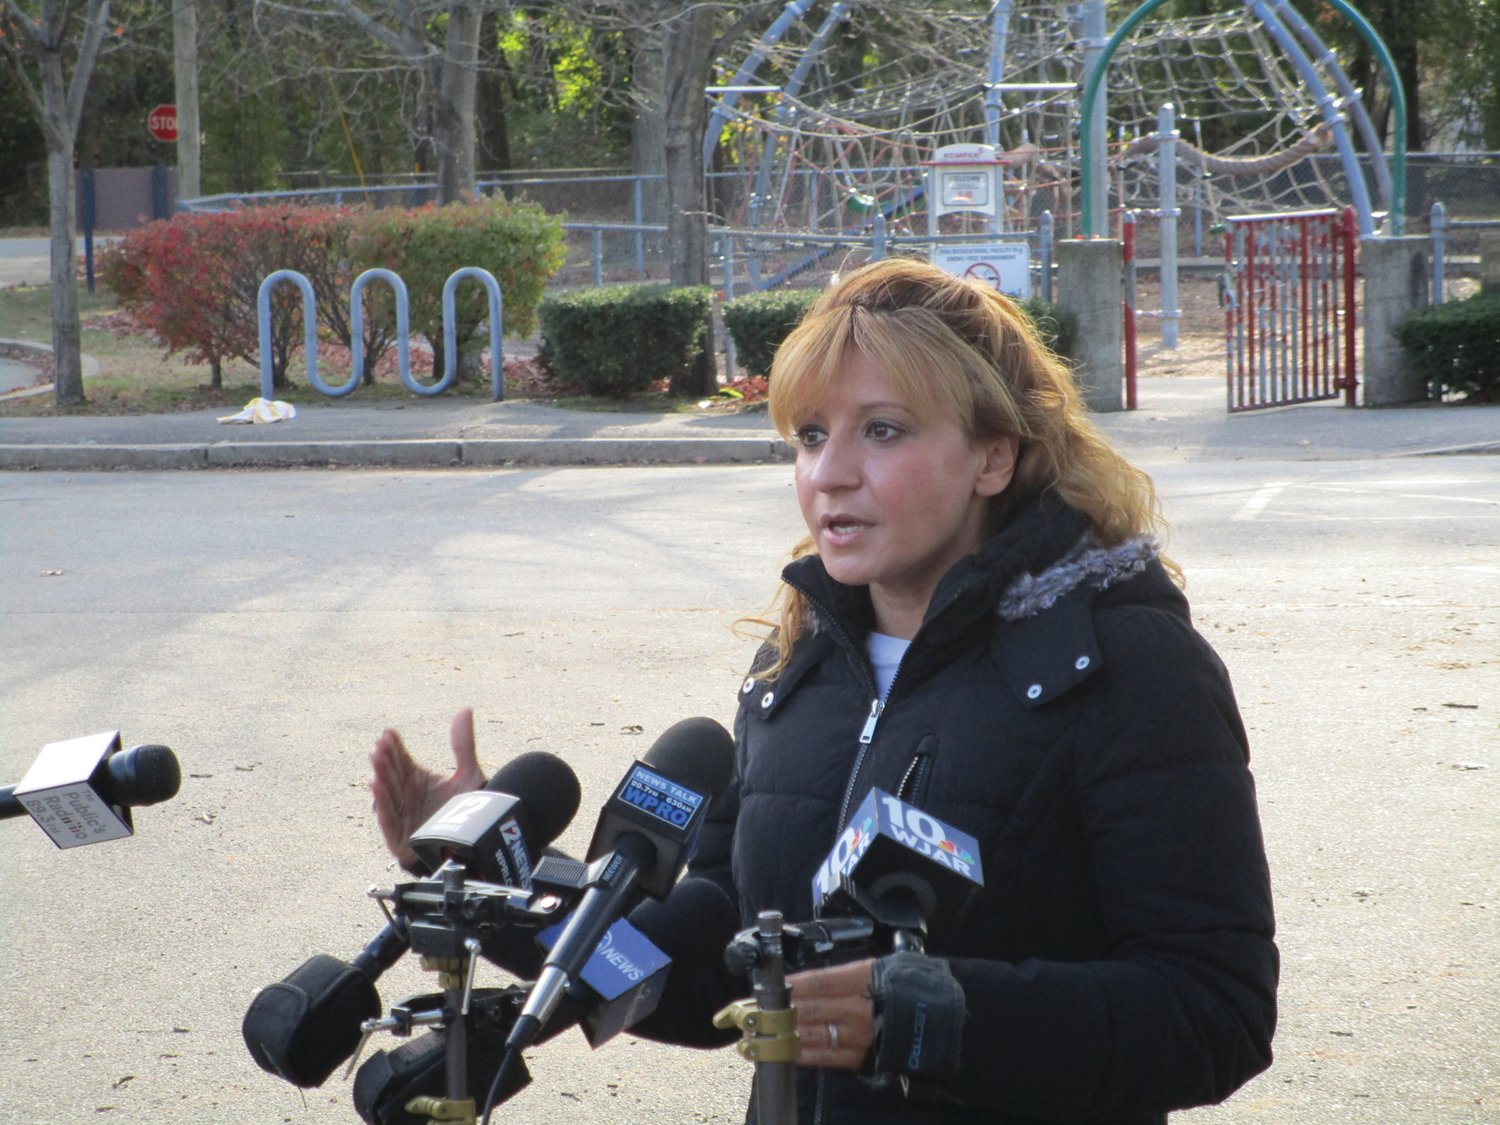 MAKINGWAVES: Barbara Ann Fenton-Fung speaks with members of the media at Brayton Park on Nov. 4, the night after the Associated Press declared her the victor in her District 15 challenge to Speaker Nicholas Mattiello.